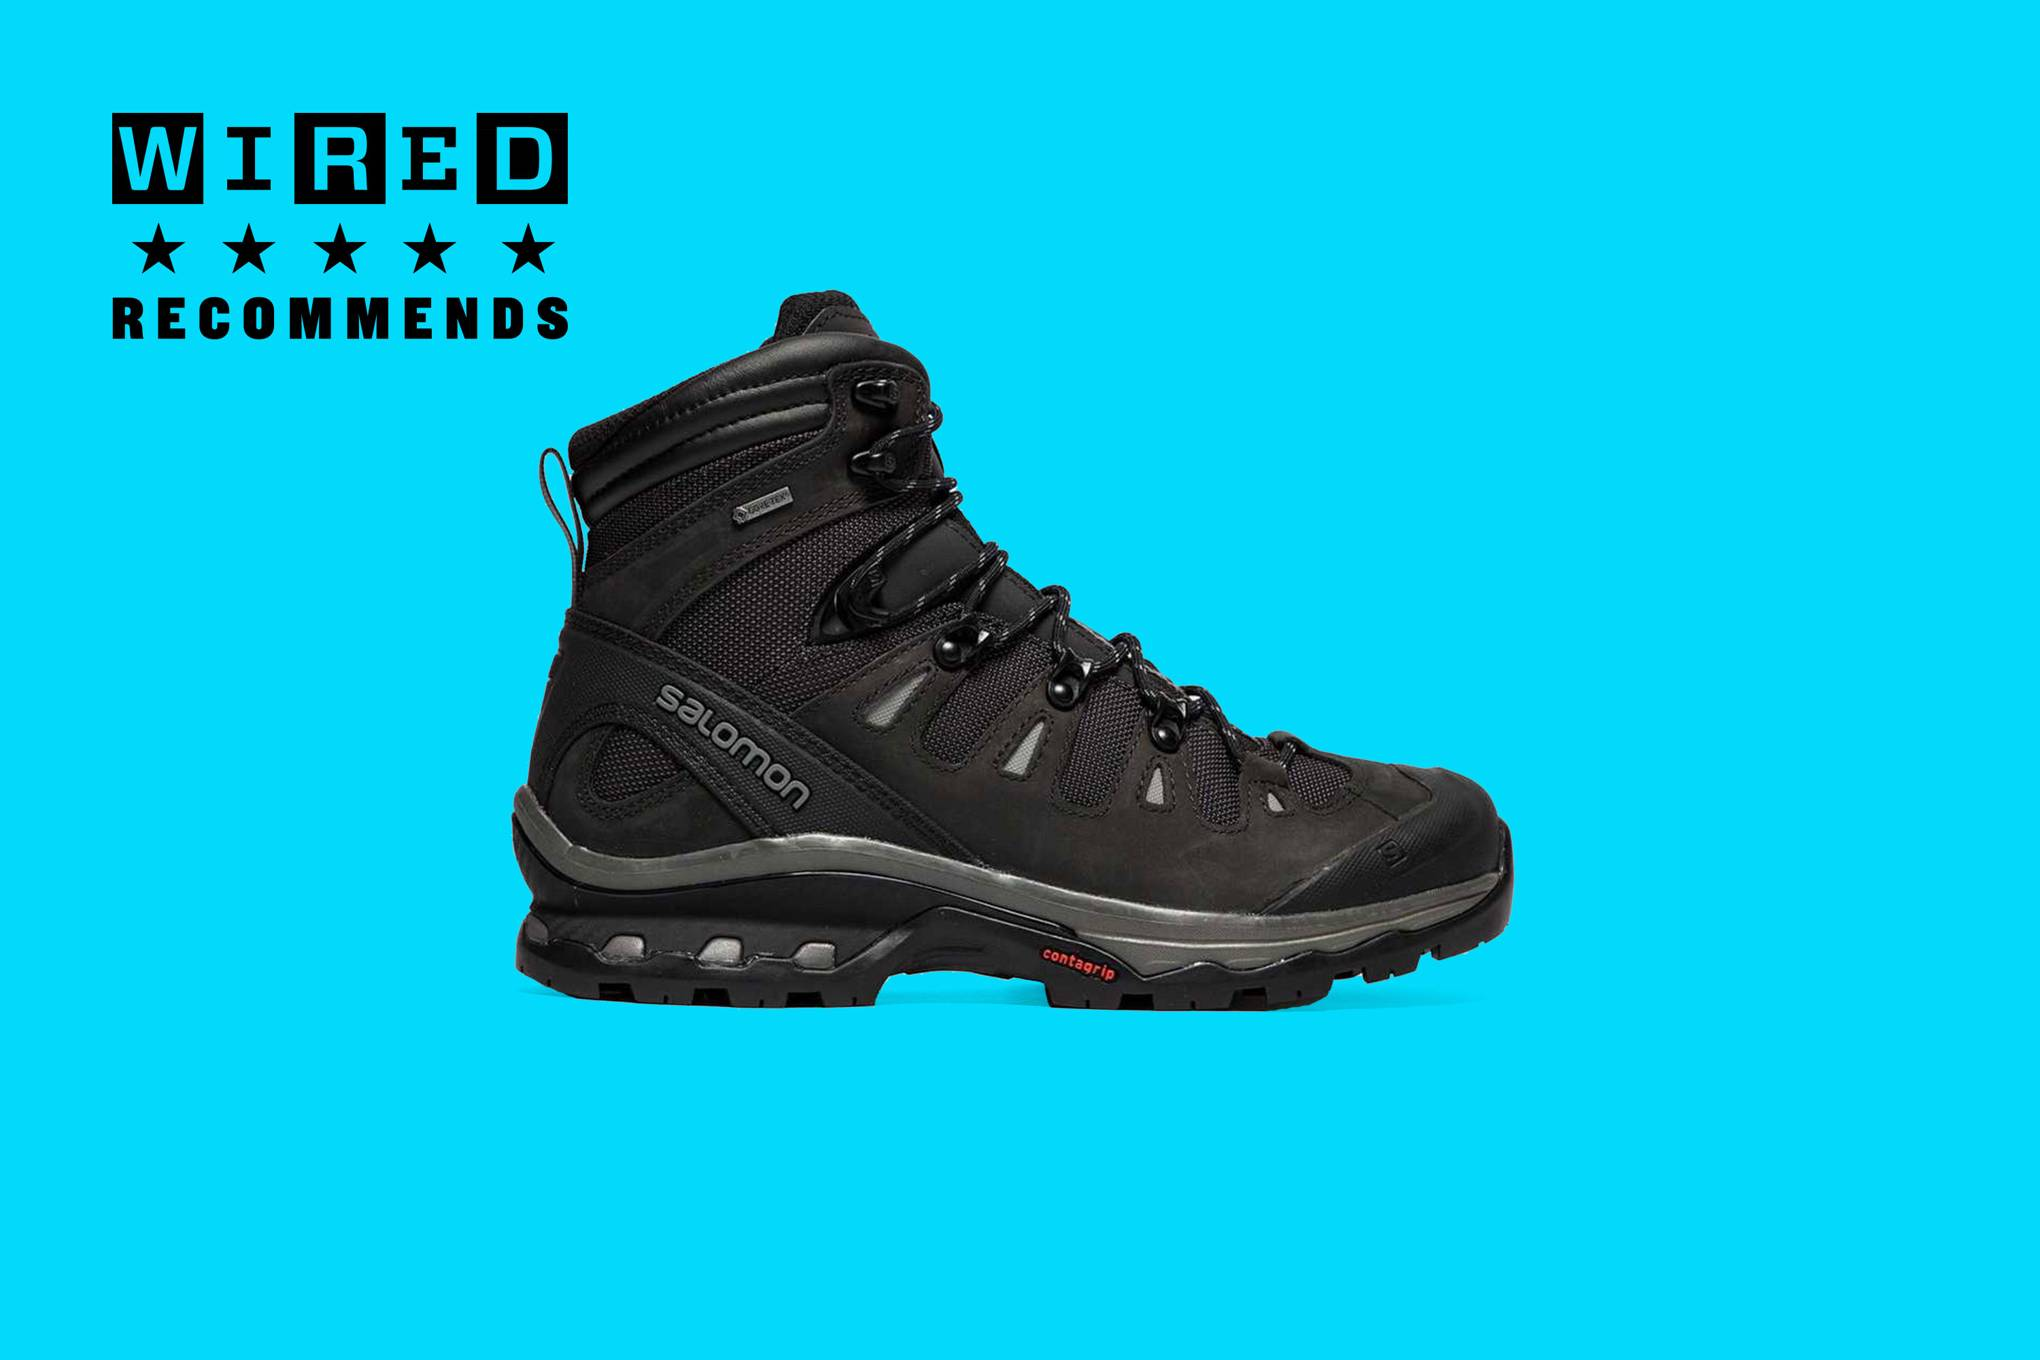 b4545210d97 Best Walking Boots 2019: The best hiking boots for men and women ...